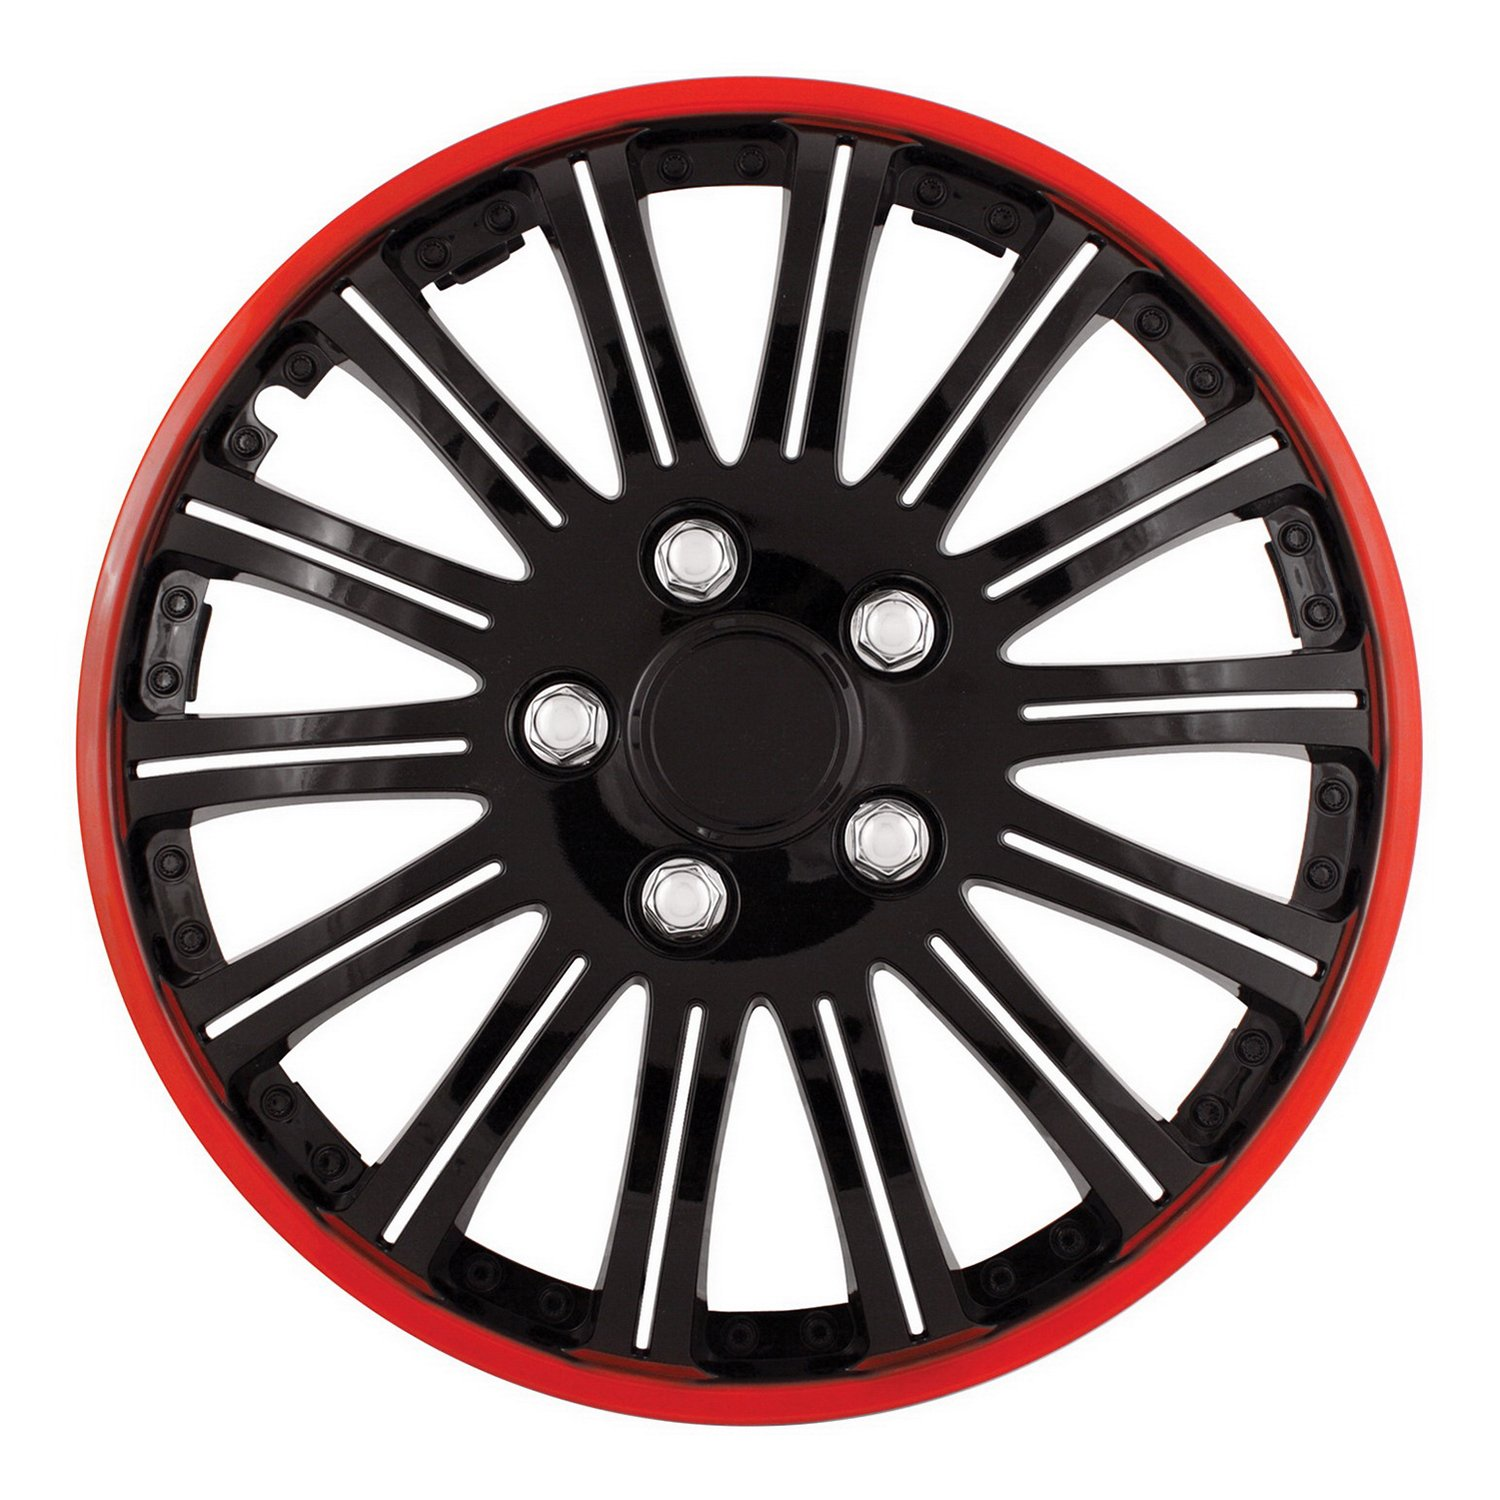 Pilot WH527-15RE-B Universal Fit Cobra Black and Chrome with Red Trim 15 Inch Wheel Covers - Set of 4